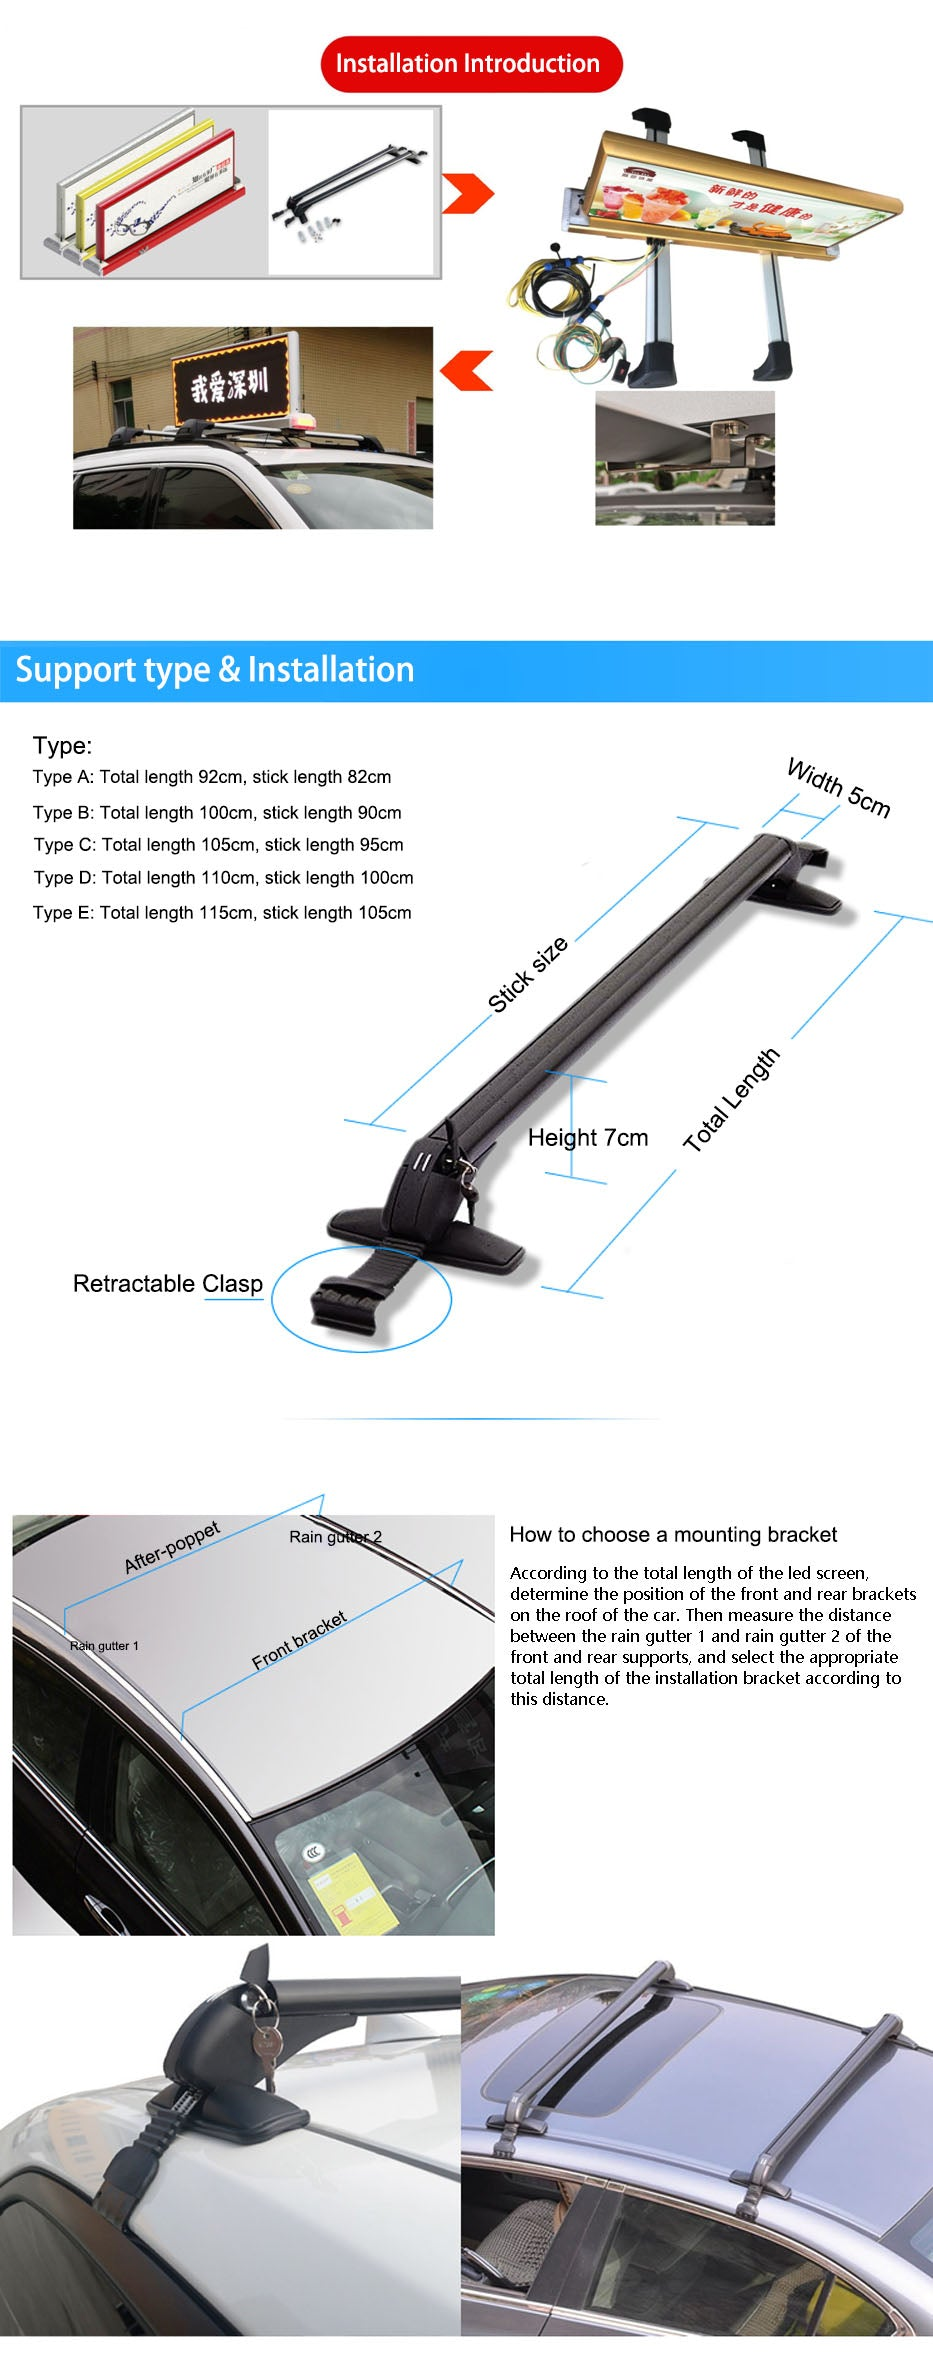 Roof Racks Crossbars Aluminum Alloy Car Roof Rack With Locking Car Storage Tools for All Car